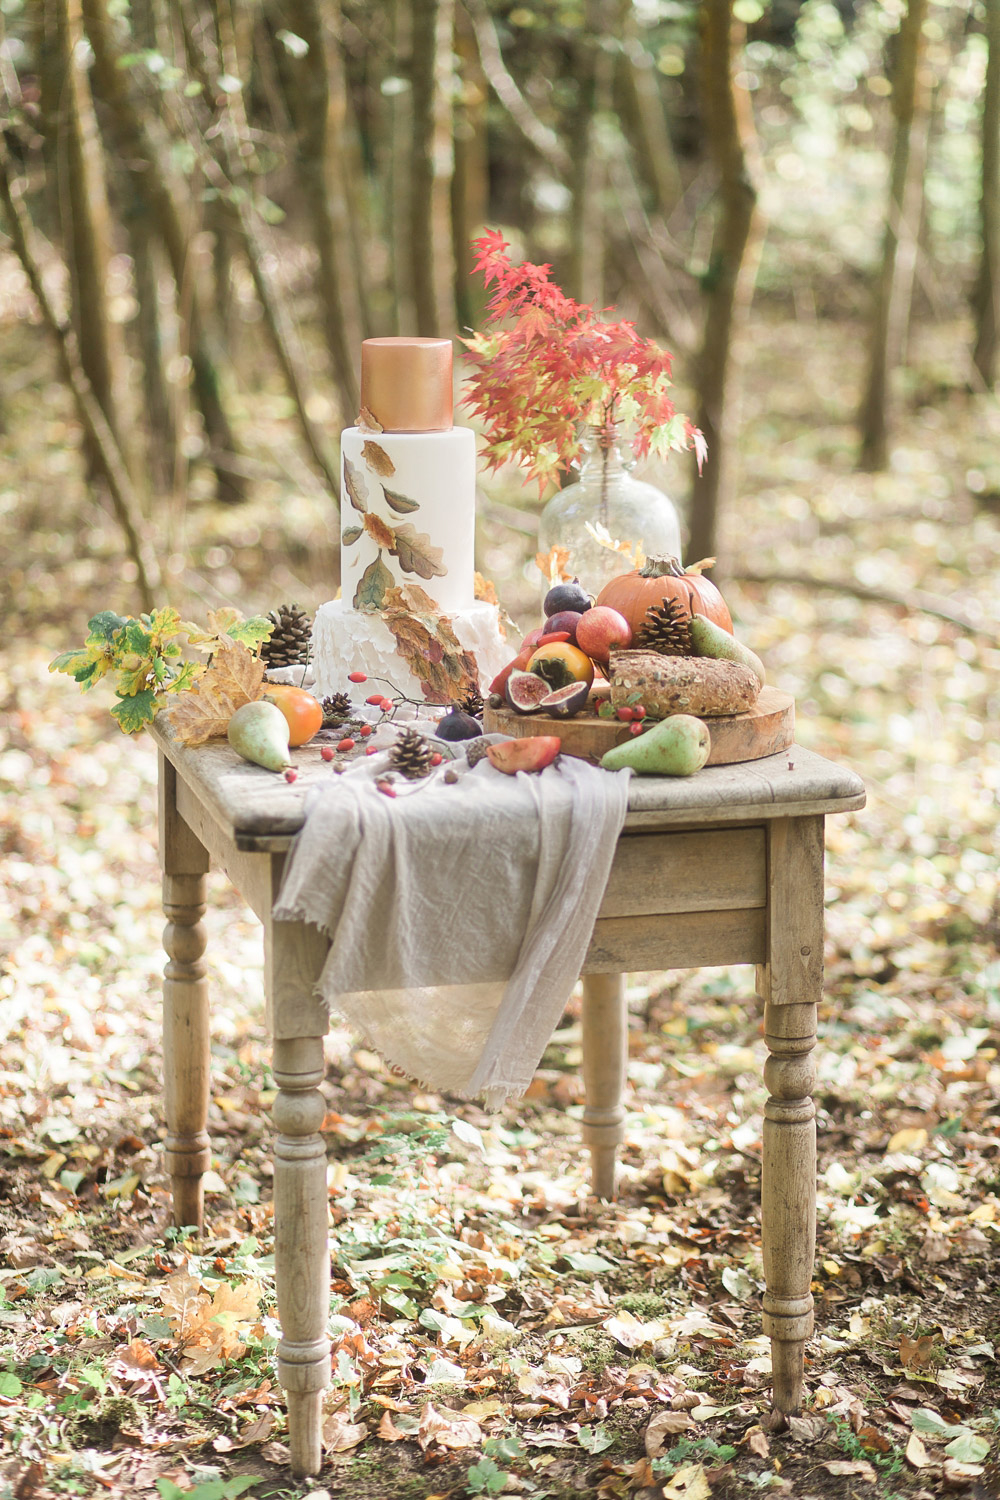 Fine Art Wedding Photography Styled Shoot Woodland Wedding Inspiration Autumn Lilybean Photography wedding decor